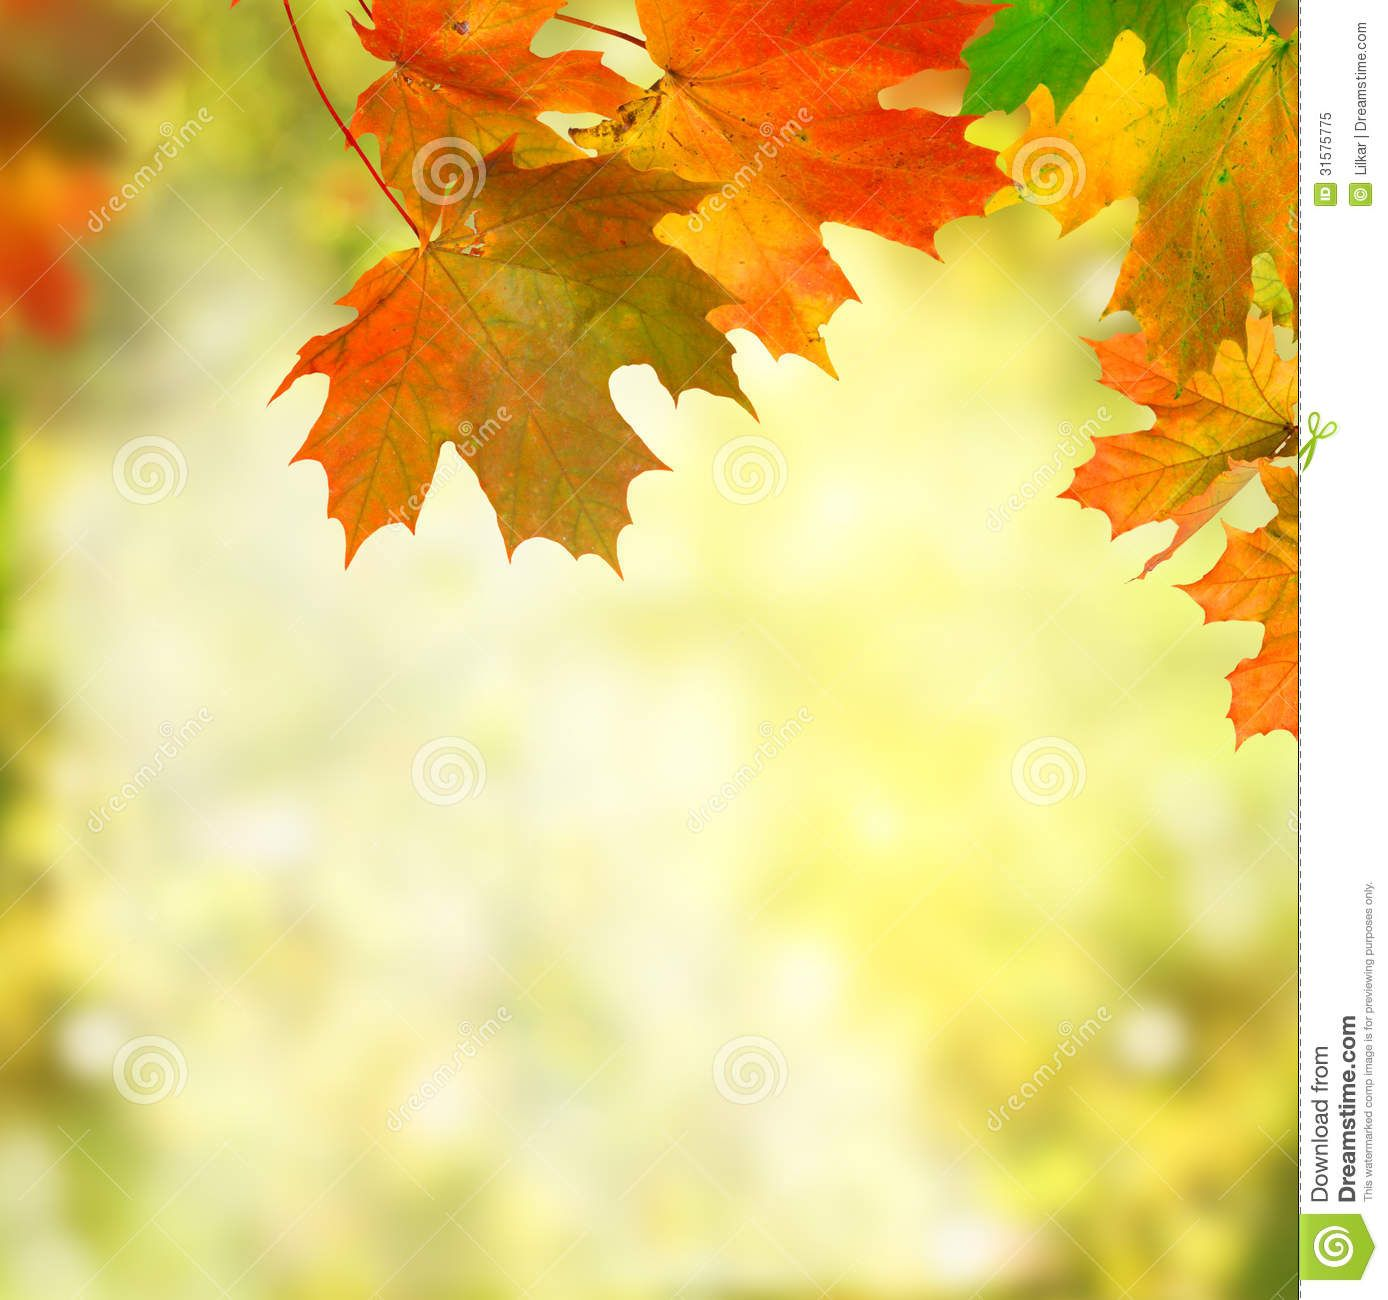 Fall Wallpaper Images Free: Free Fall Background Pictures